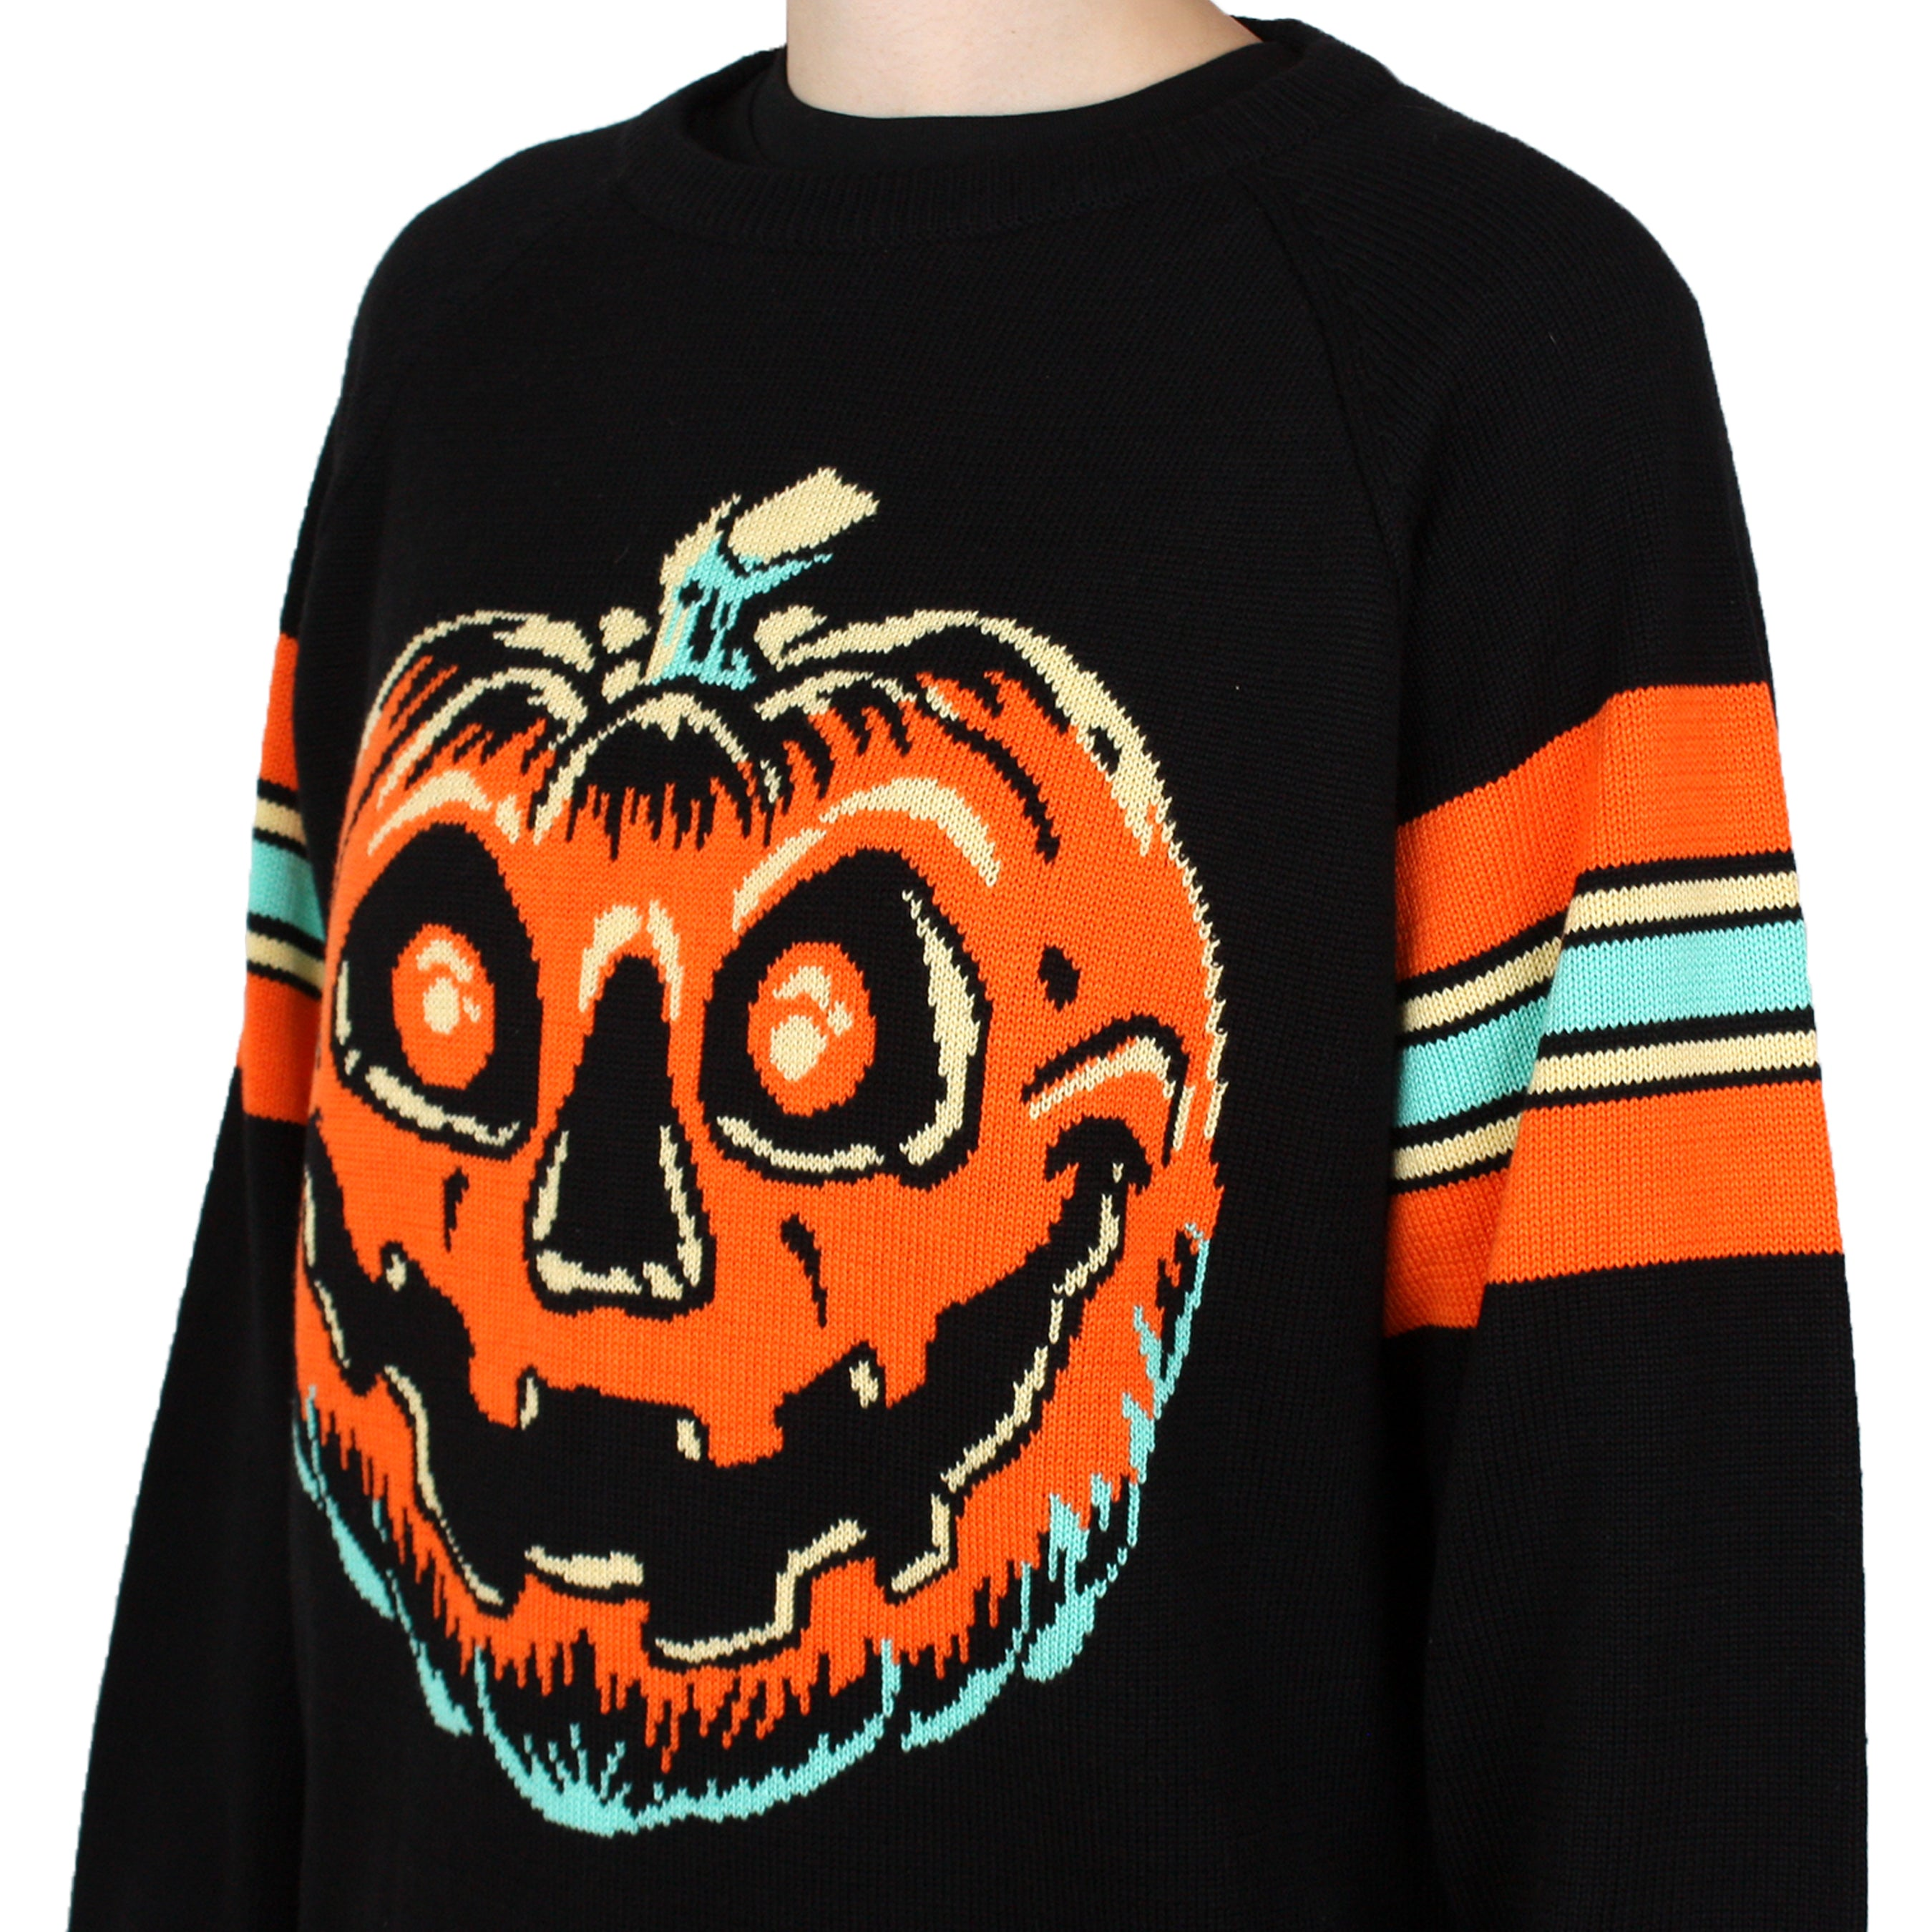 Beistle Cackling Jack Knit Sweater